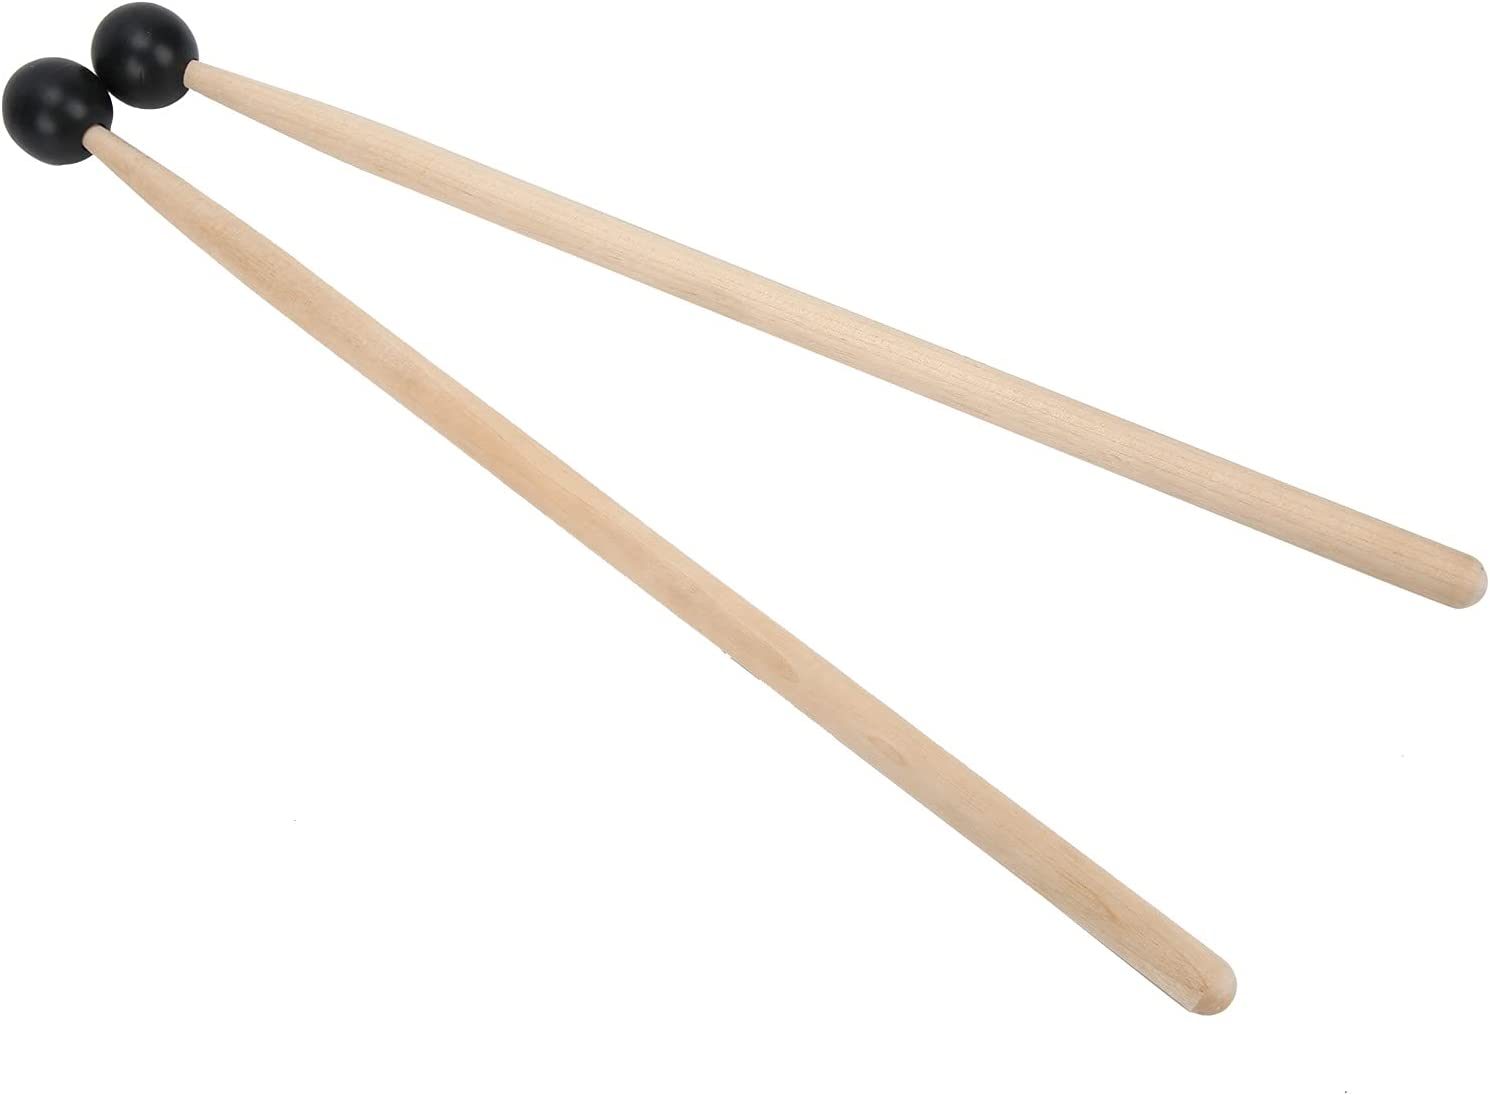 Drum Max 45% OFF 2021 new Sticks Beautiful Appearance Material Structure Reasonable